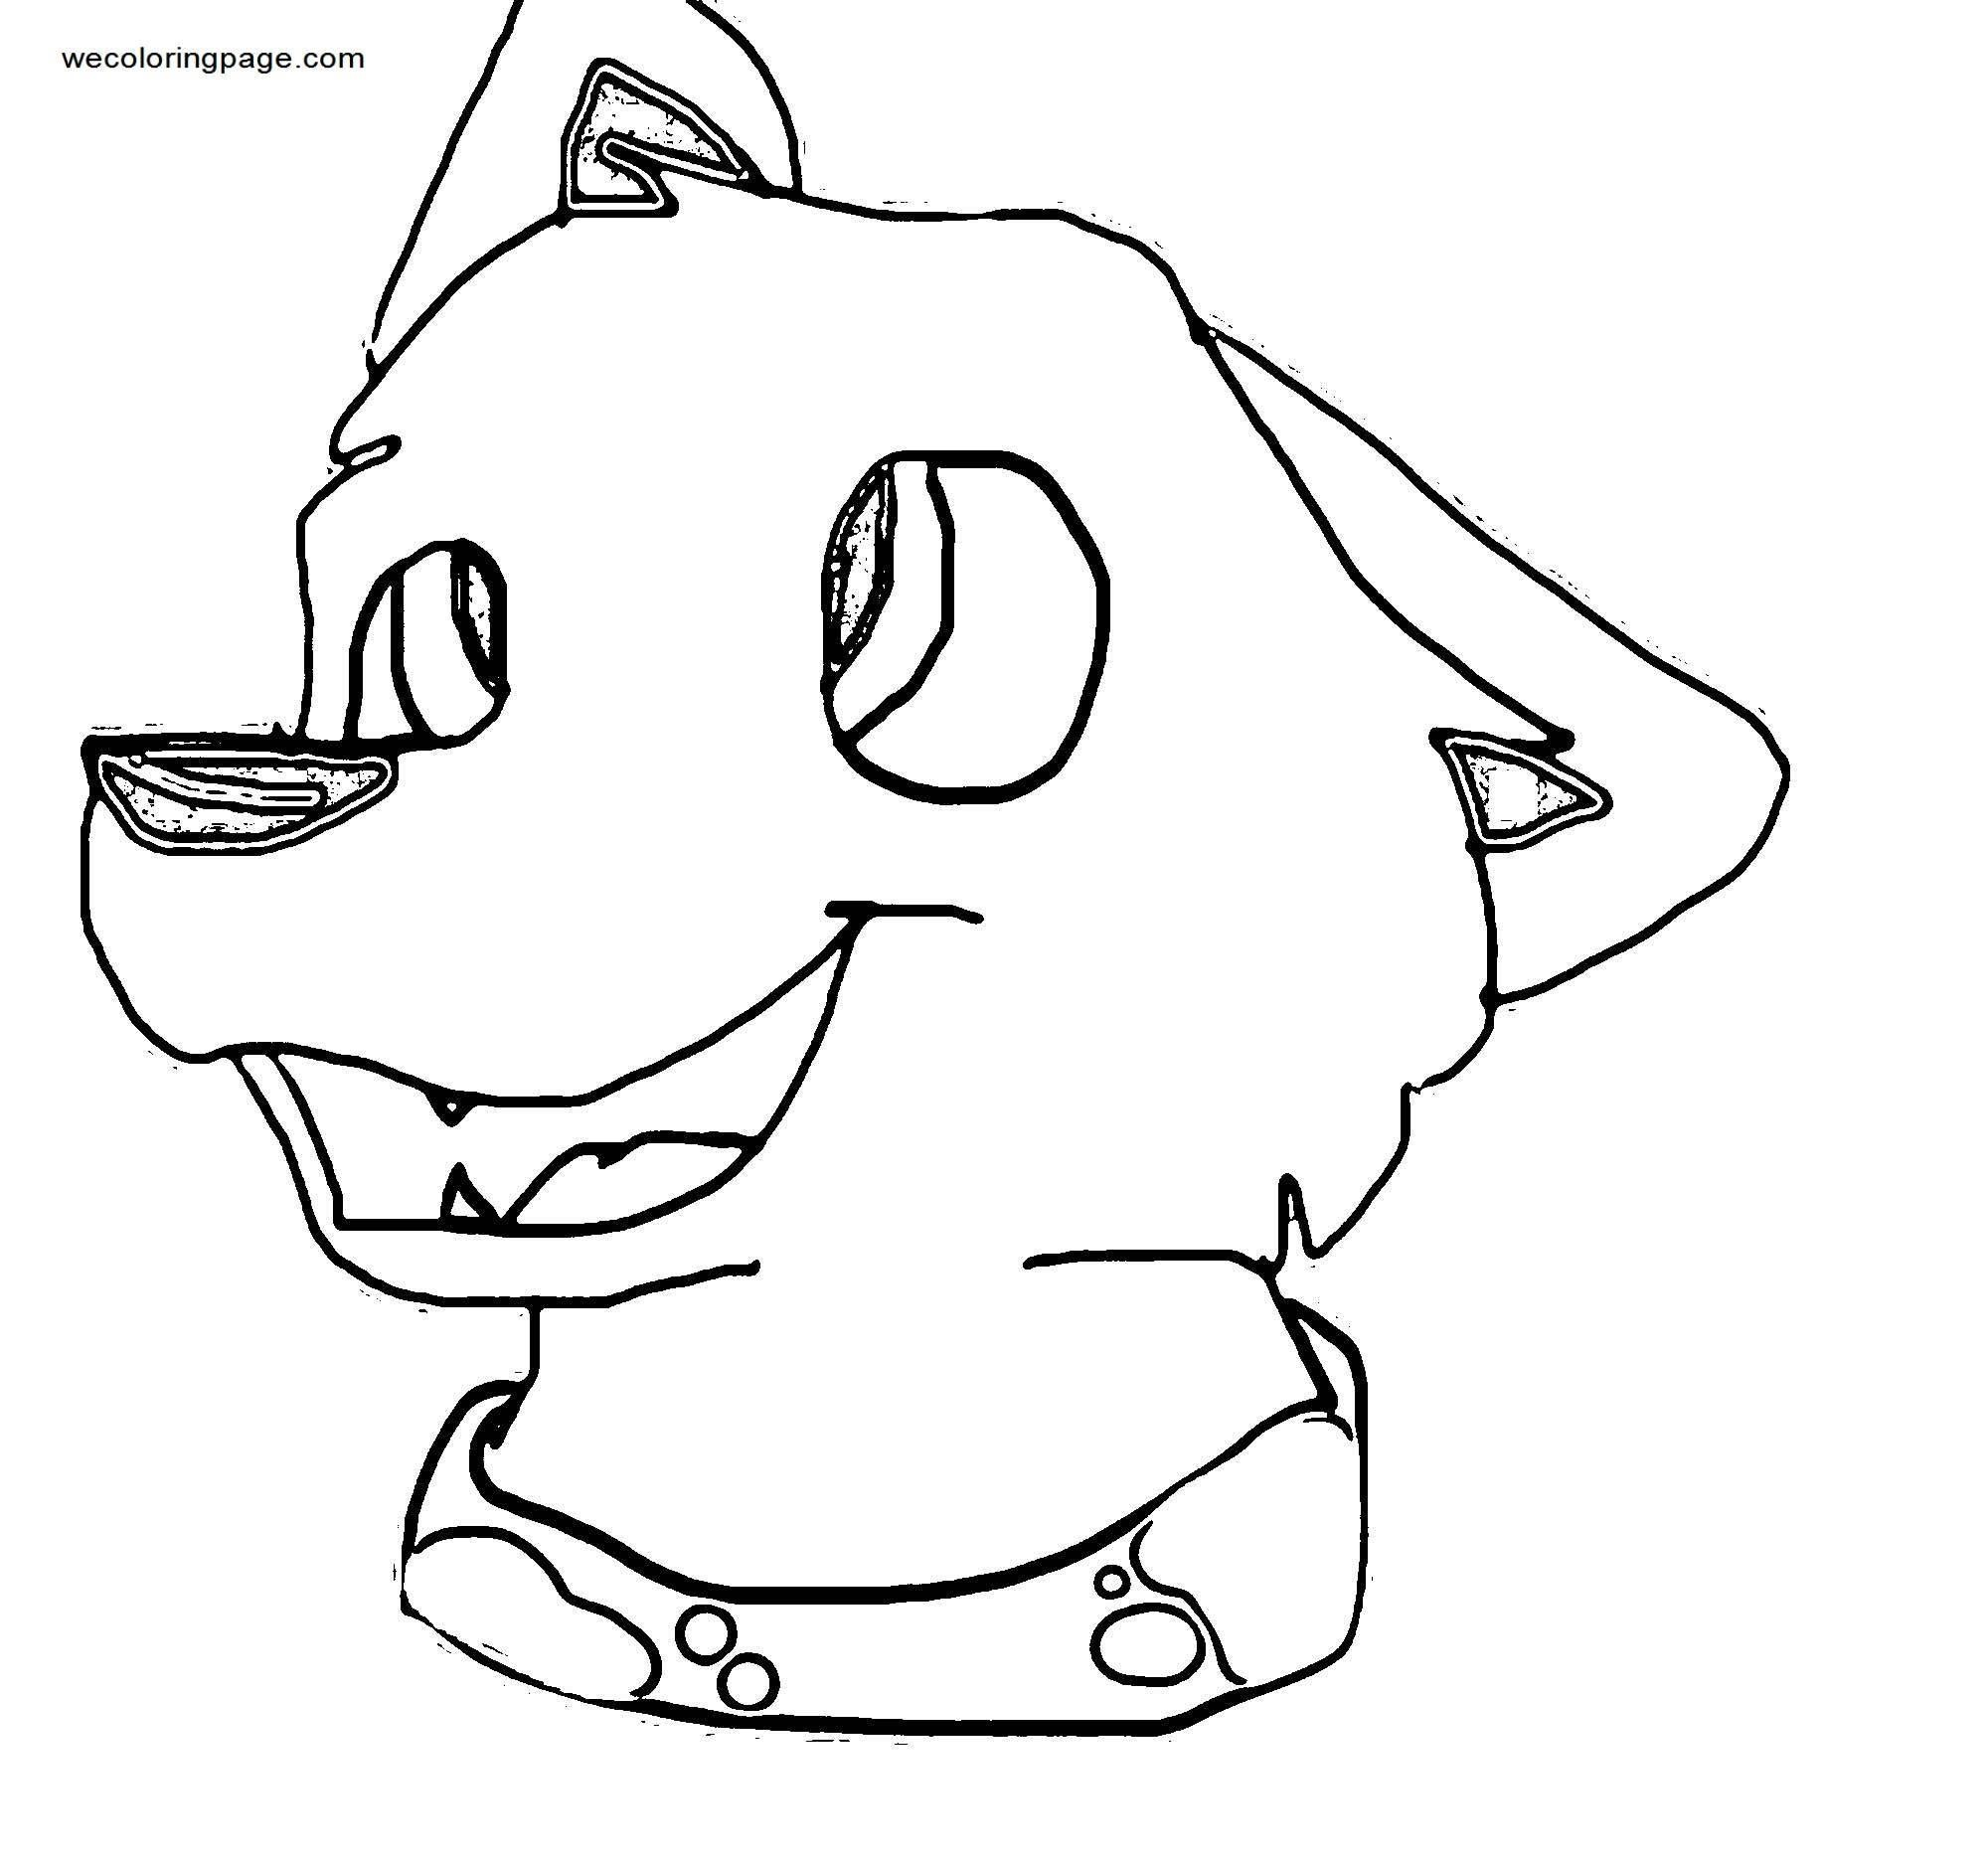 Look At That Face Coloring Page Wecoloringpage Com